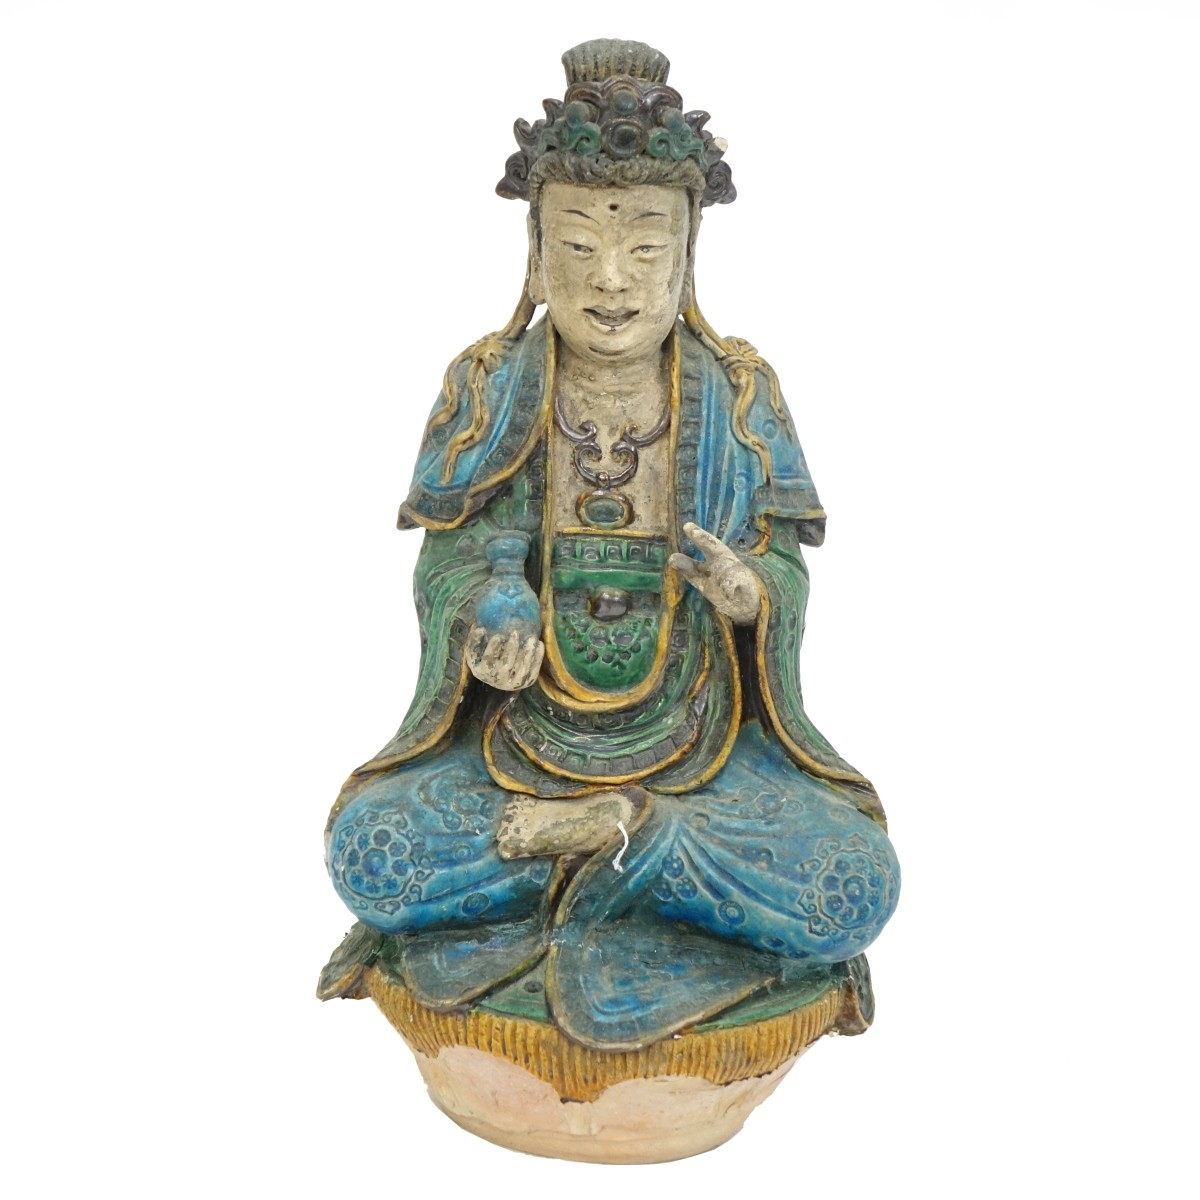 Antique Chinese Glazed Terracotta Buddha